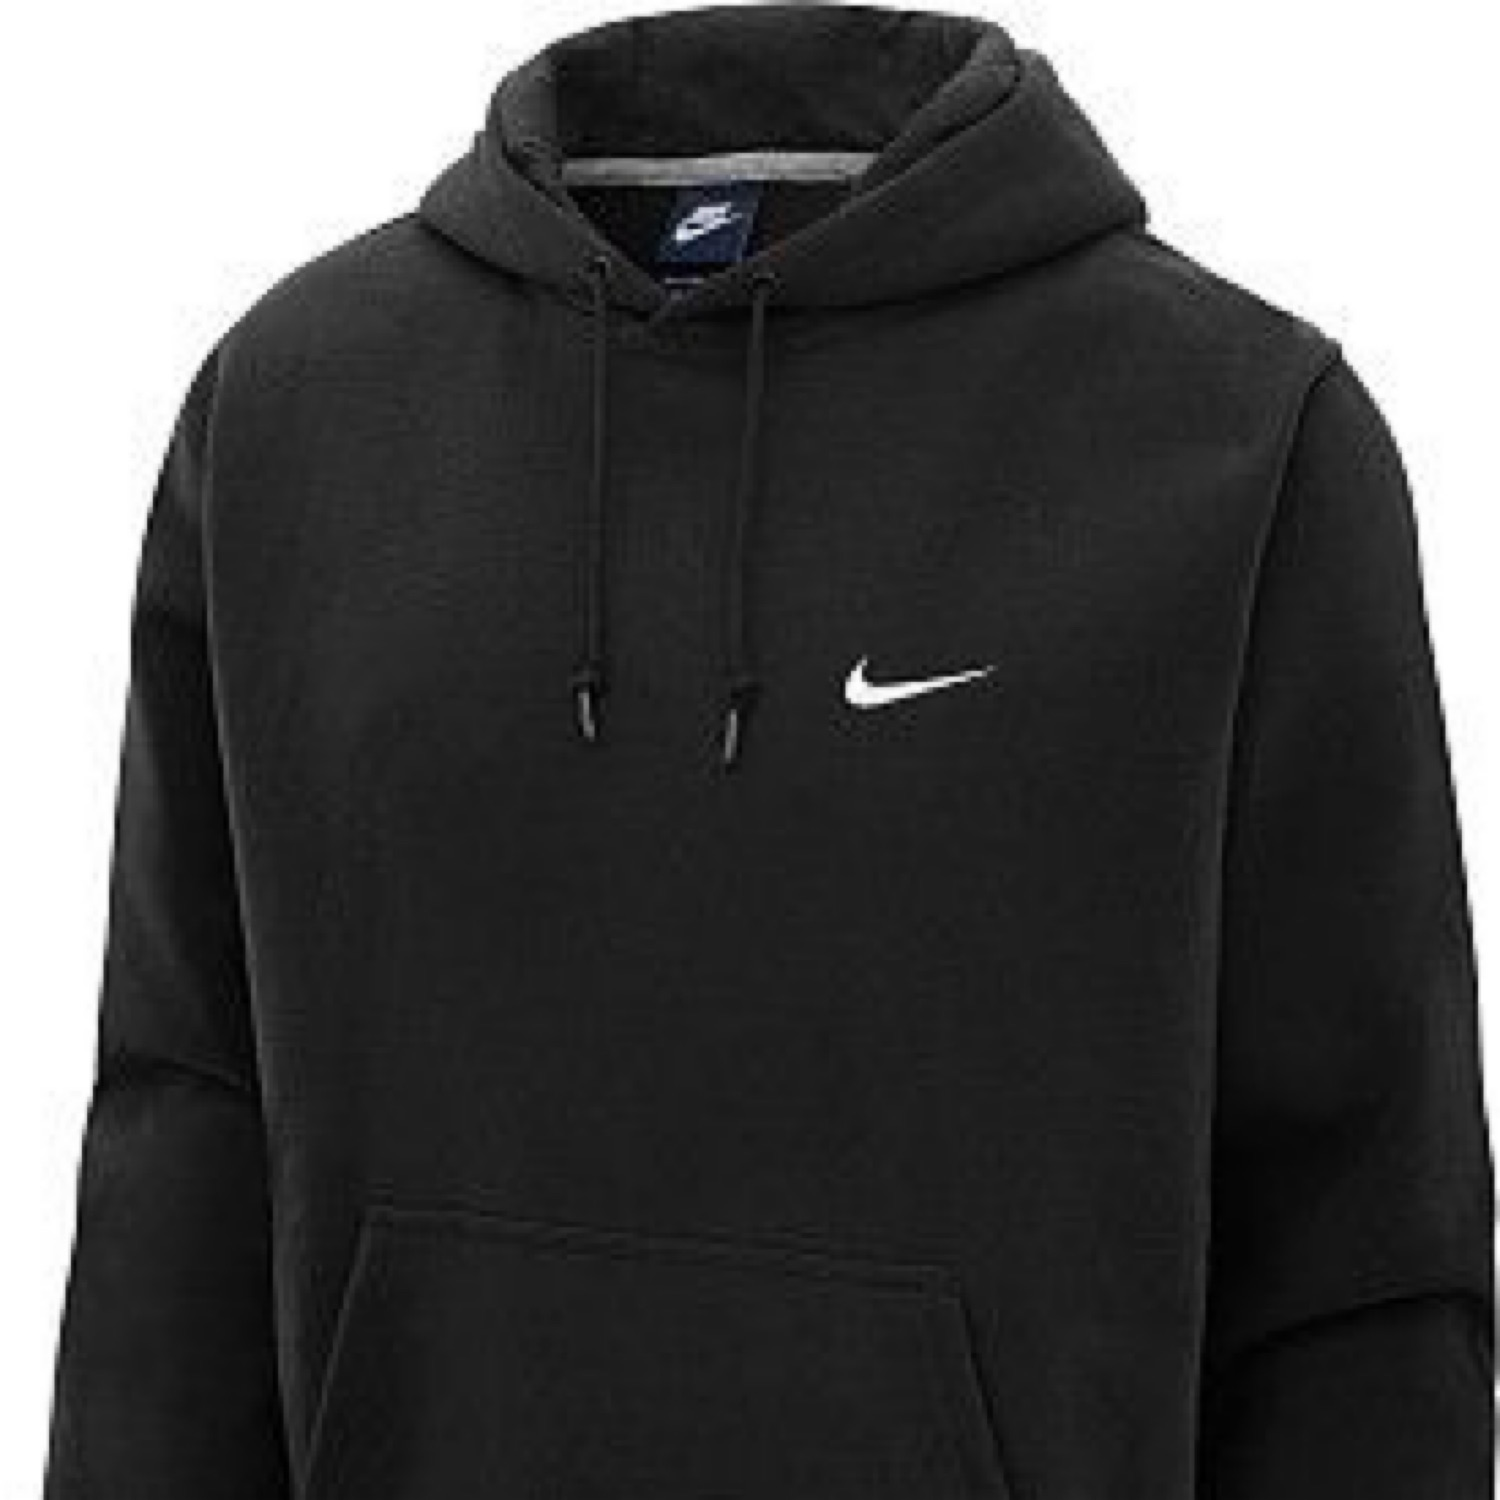 nike hoodie with small logo